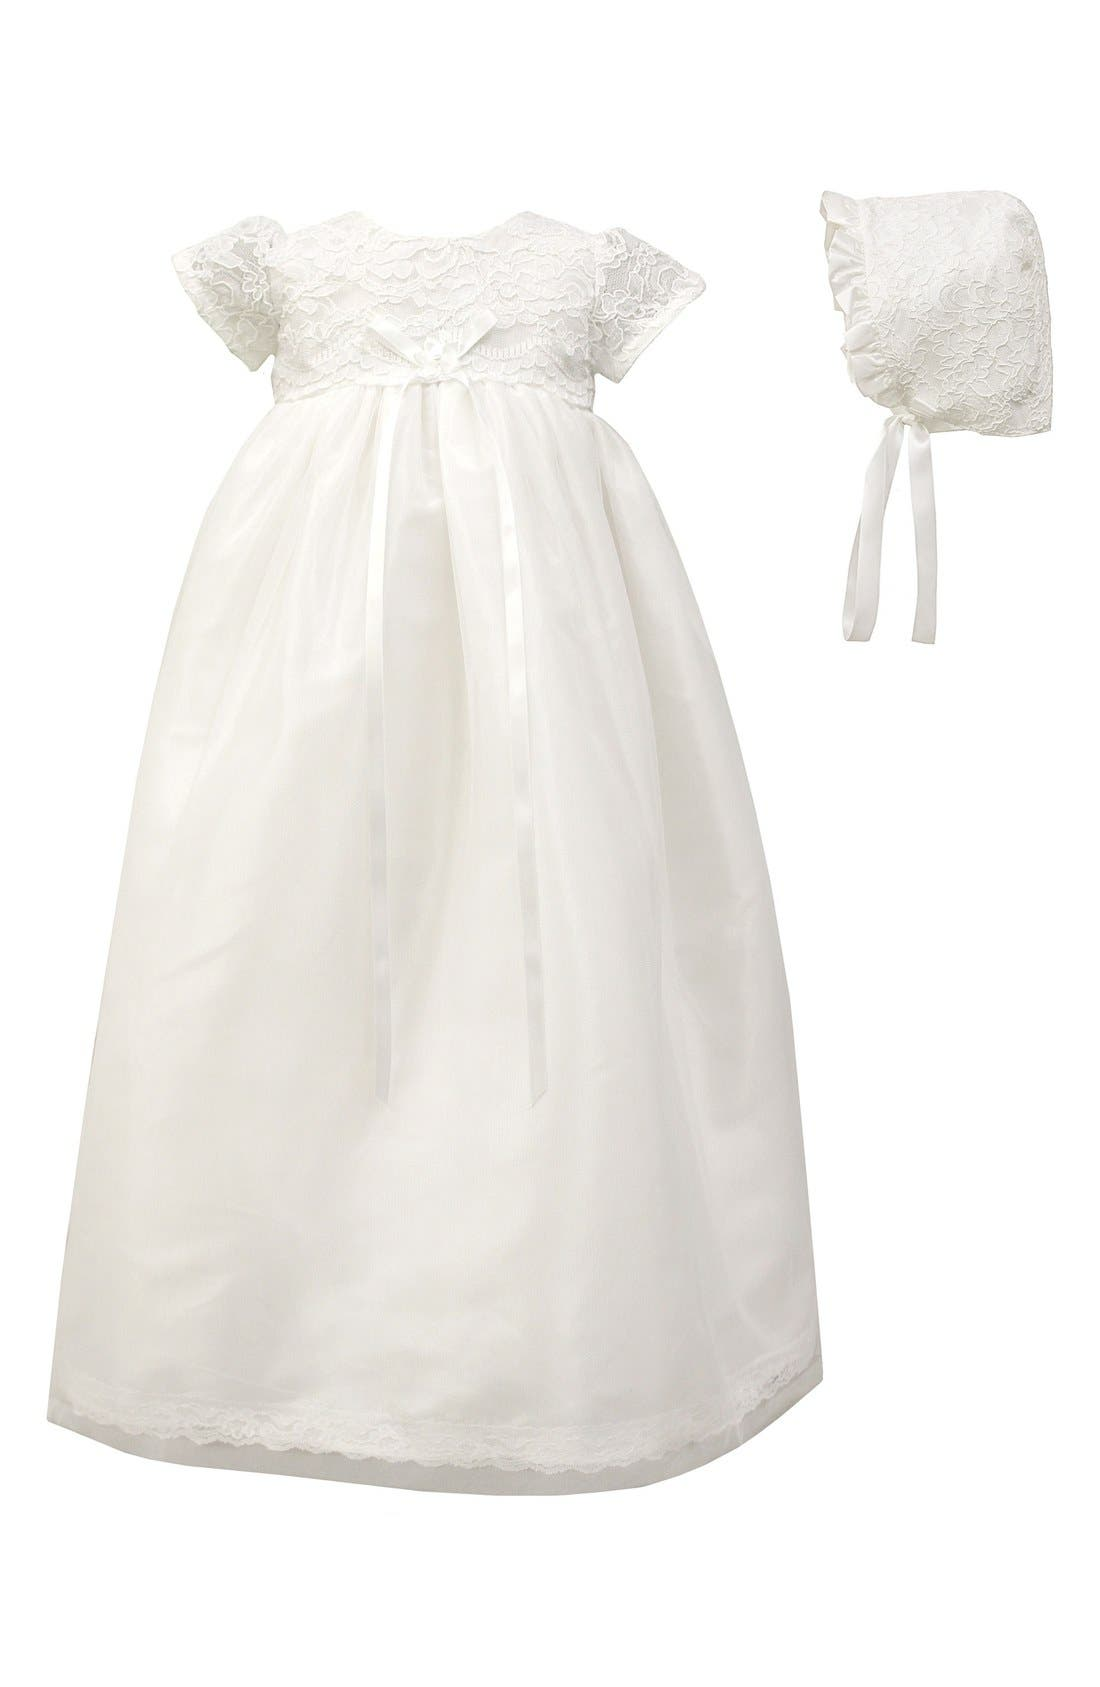 Infant C.i. Castro & Co. Scalloped Lace Christening Gown & Bonnet Set